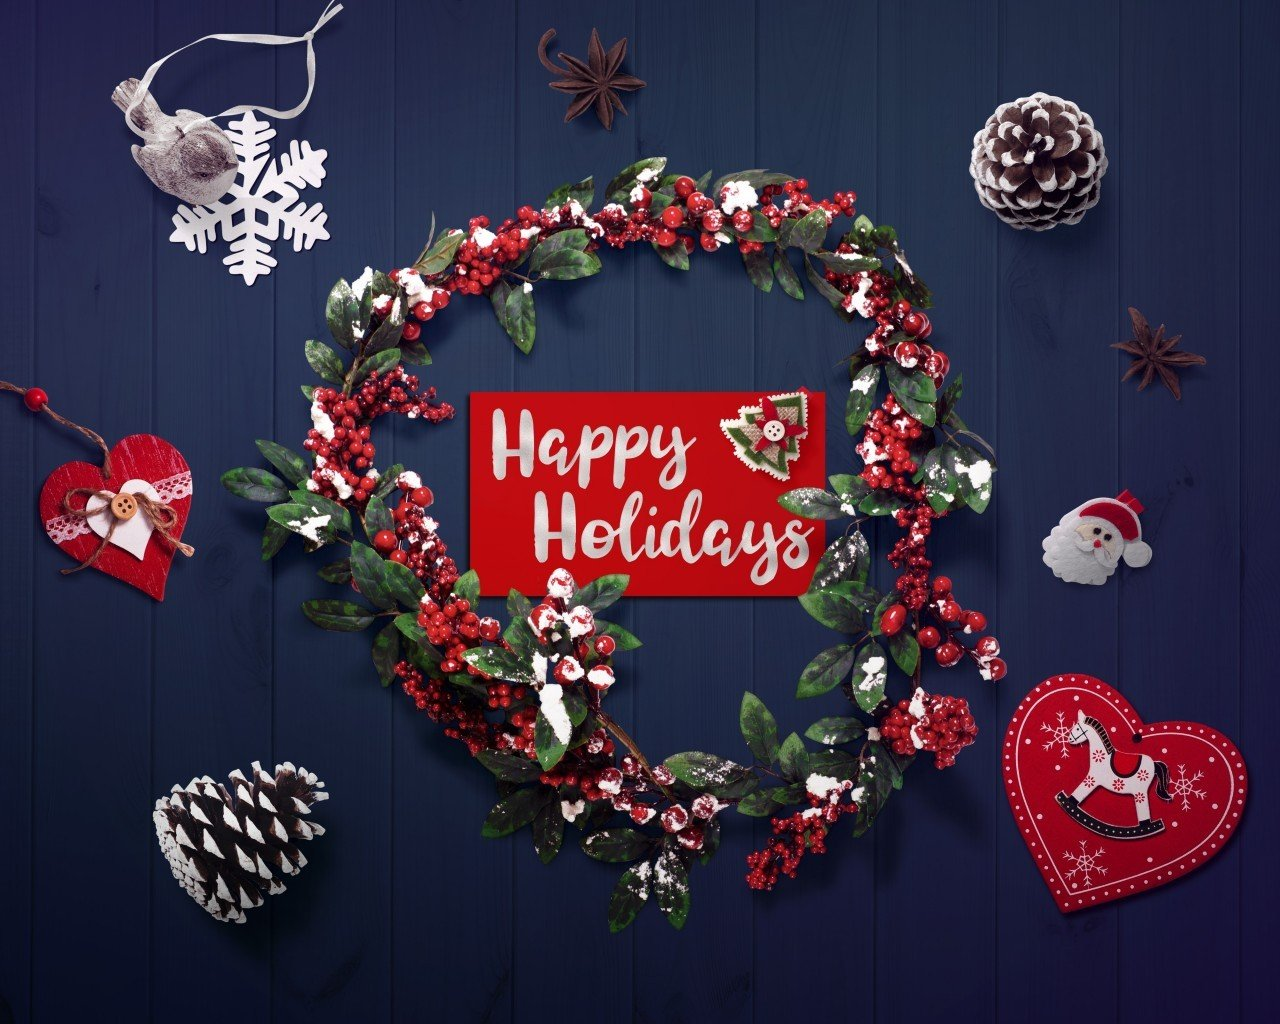 Download 1280x1024 Merry Christmas 2020 Decorations Happy 1280x1024